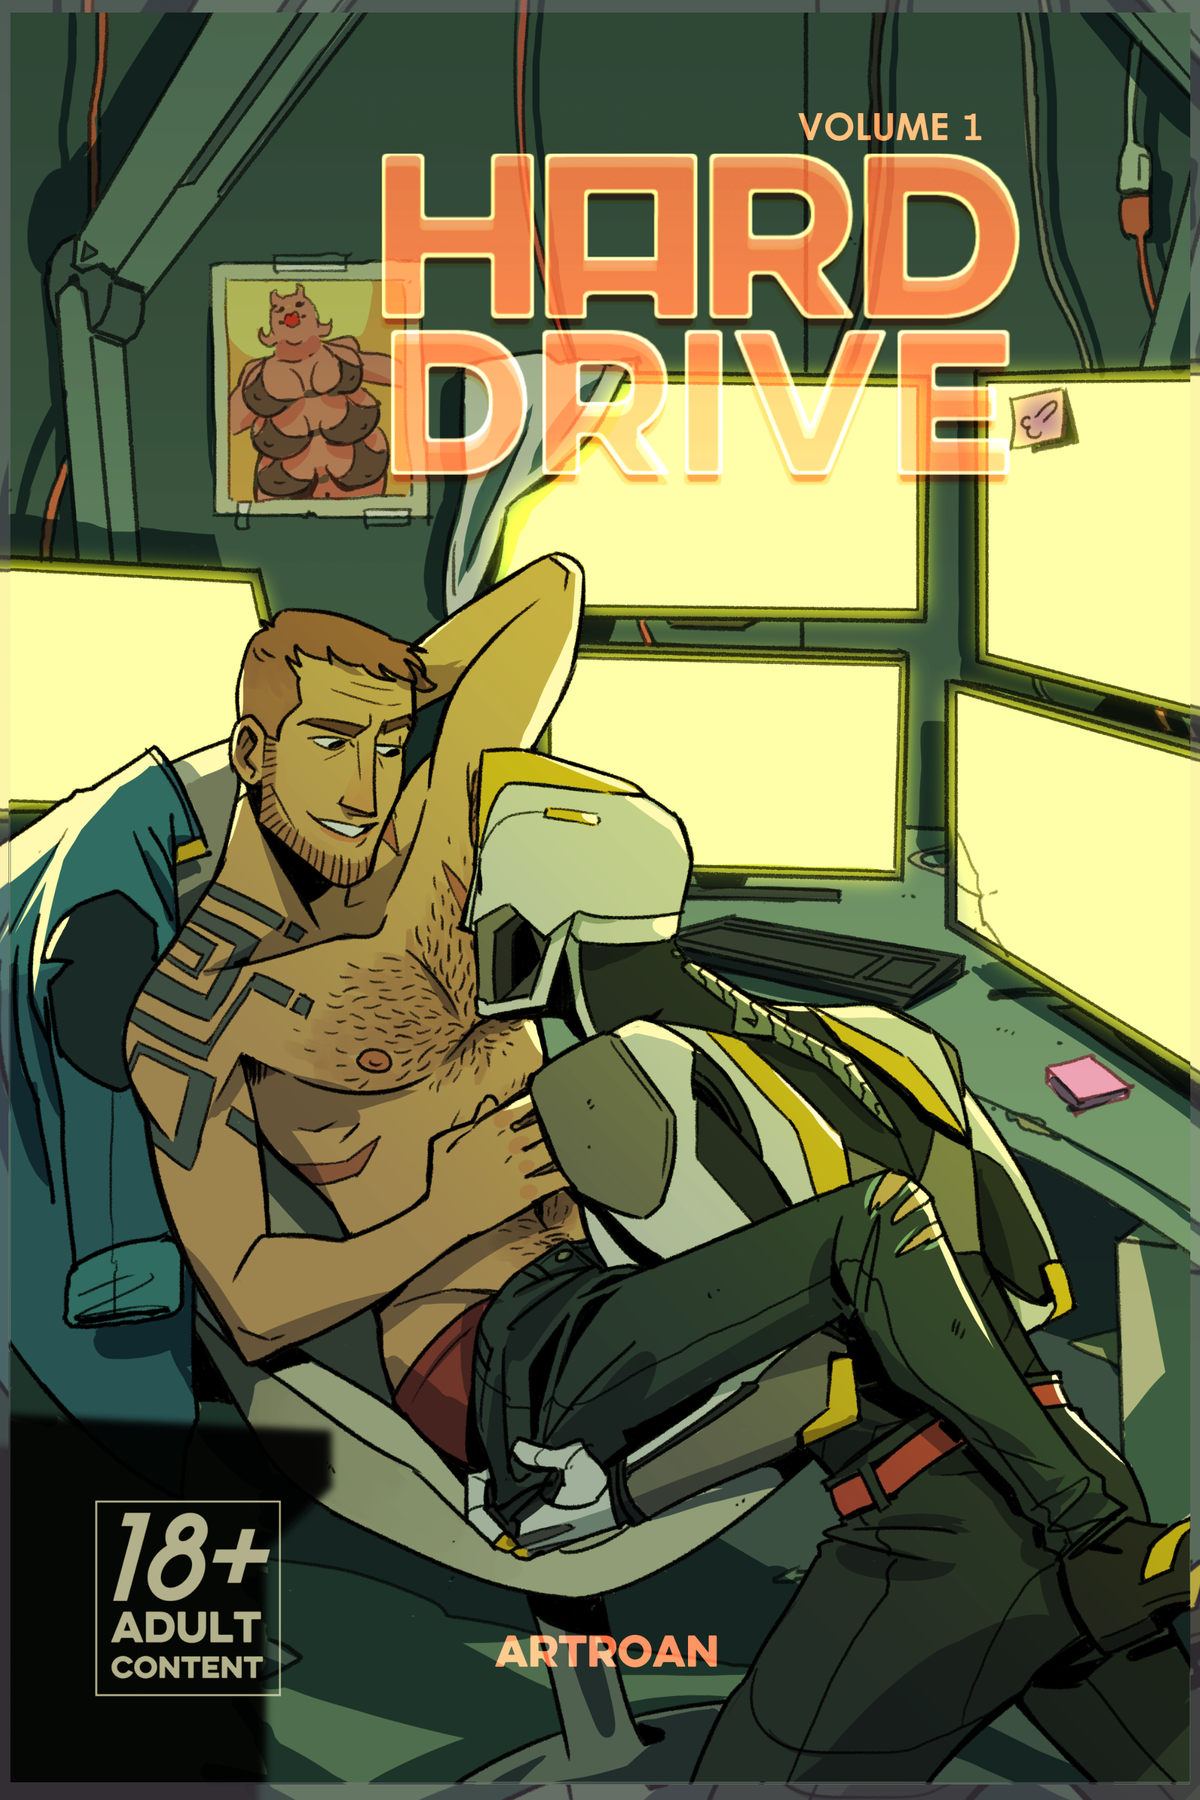 Image of Hard Drive vol.1